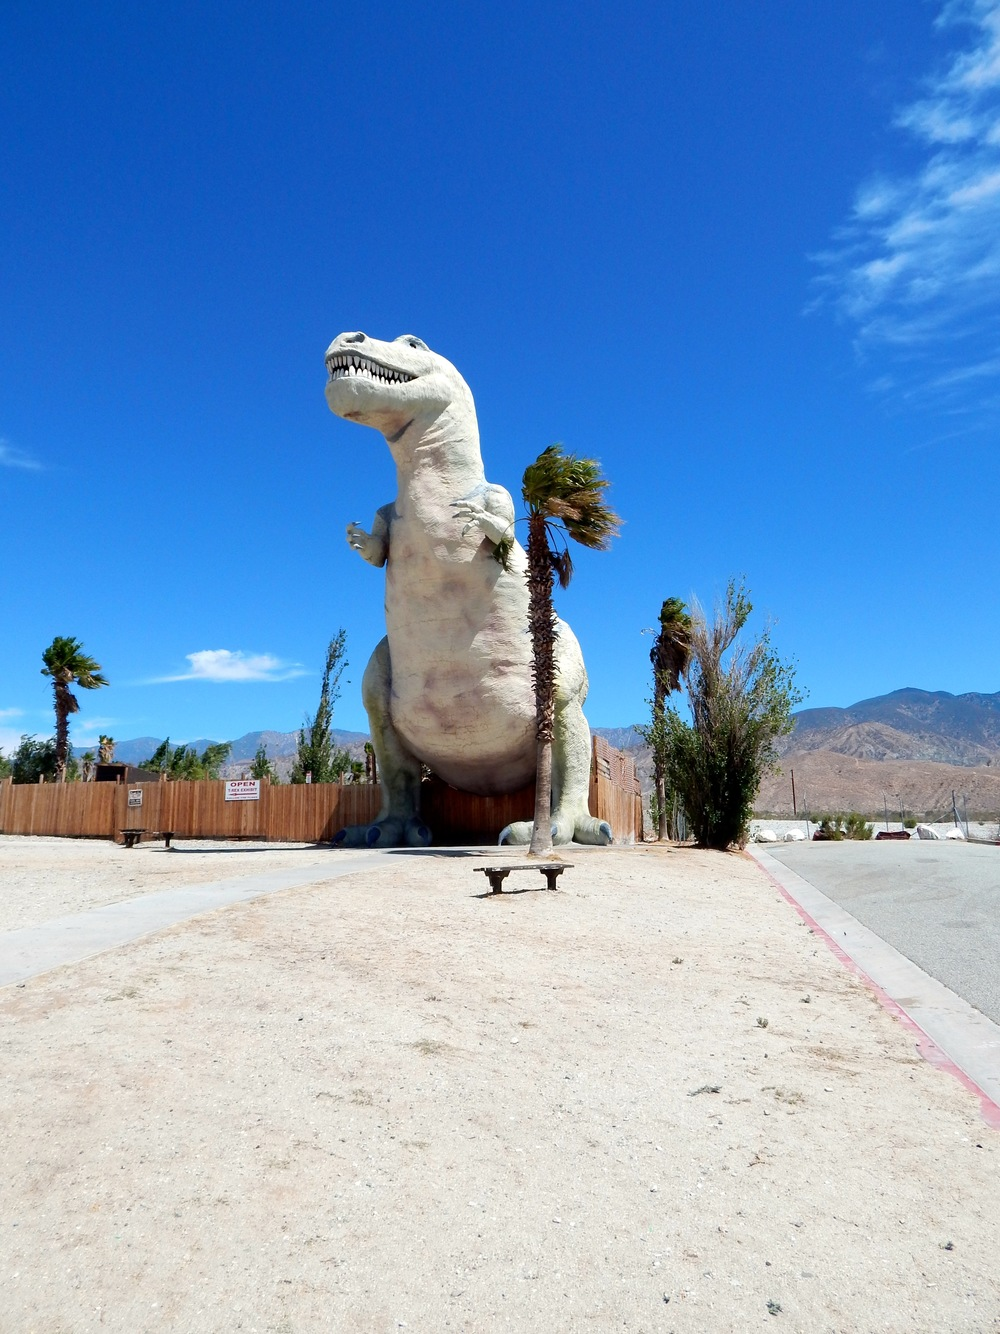 cazabon-dinosaurs-route66-american-west